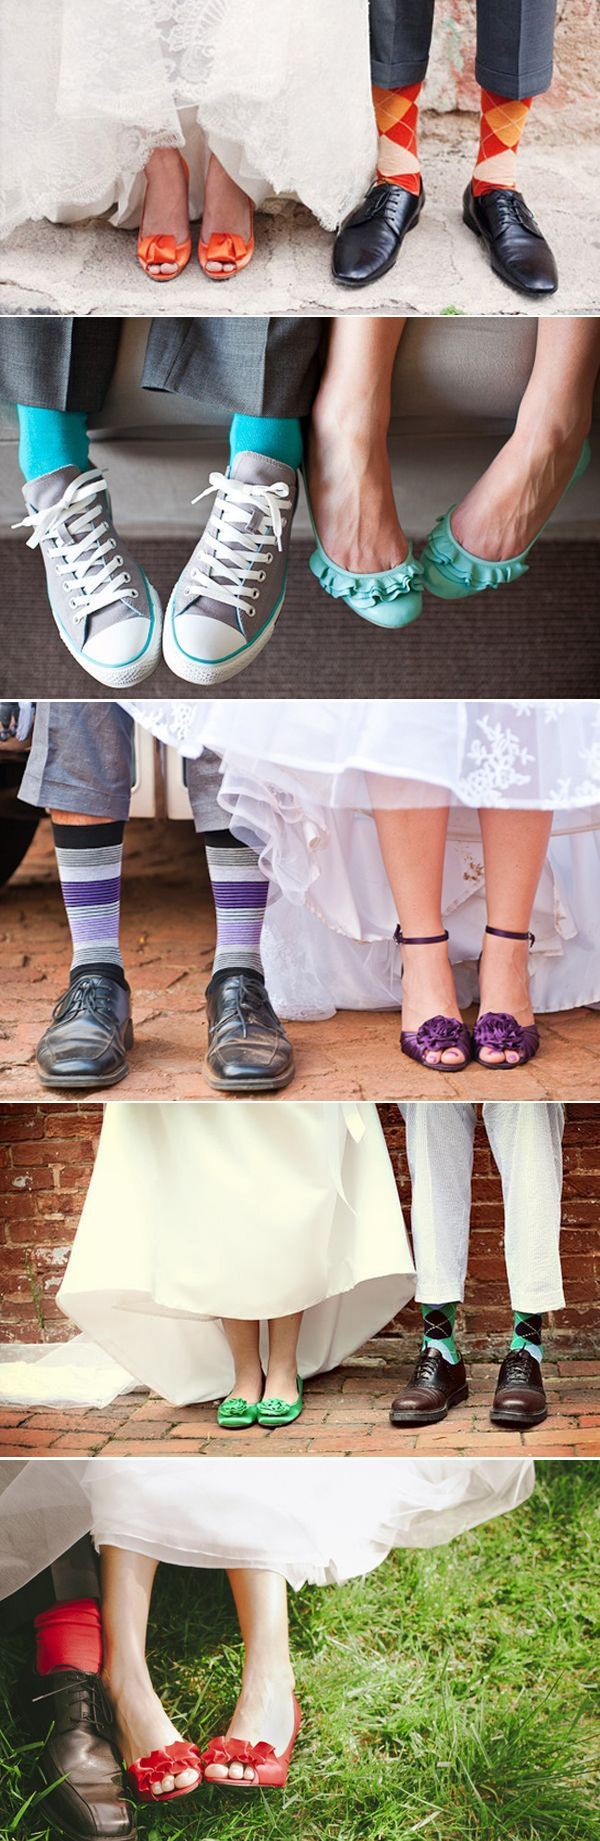 Matching socks and shoes! Love the second one down! Her shoes are adorable!